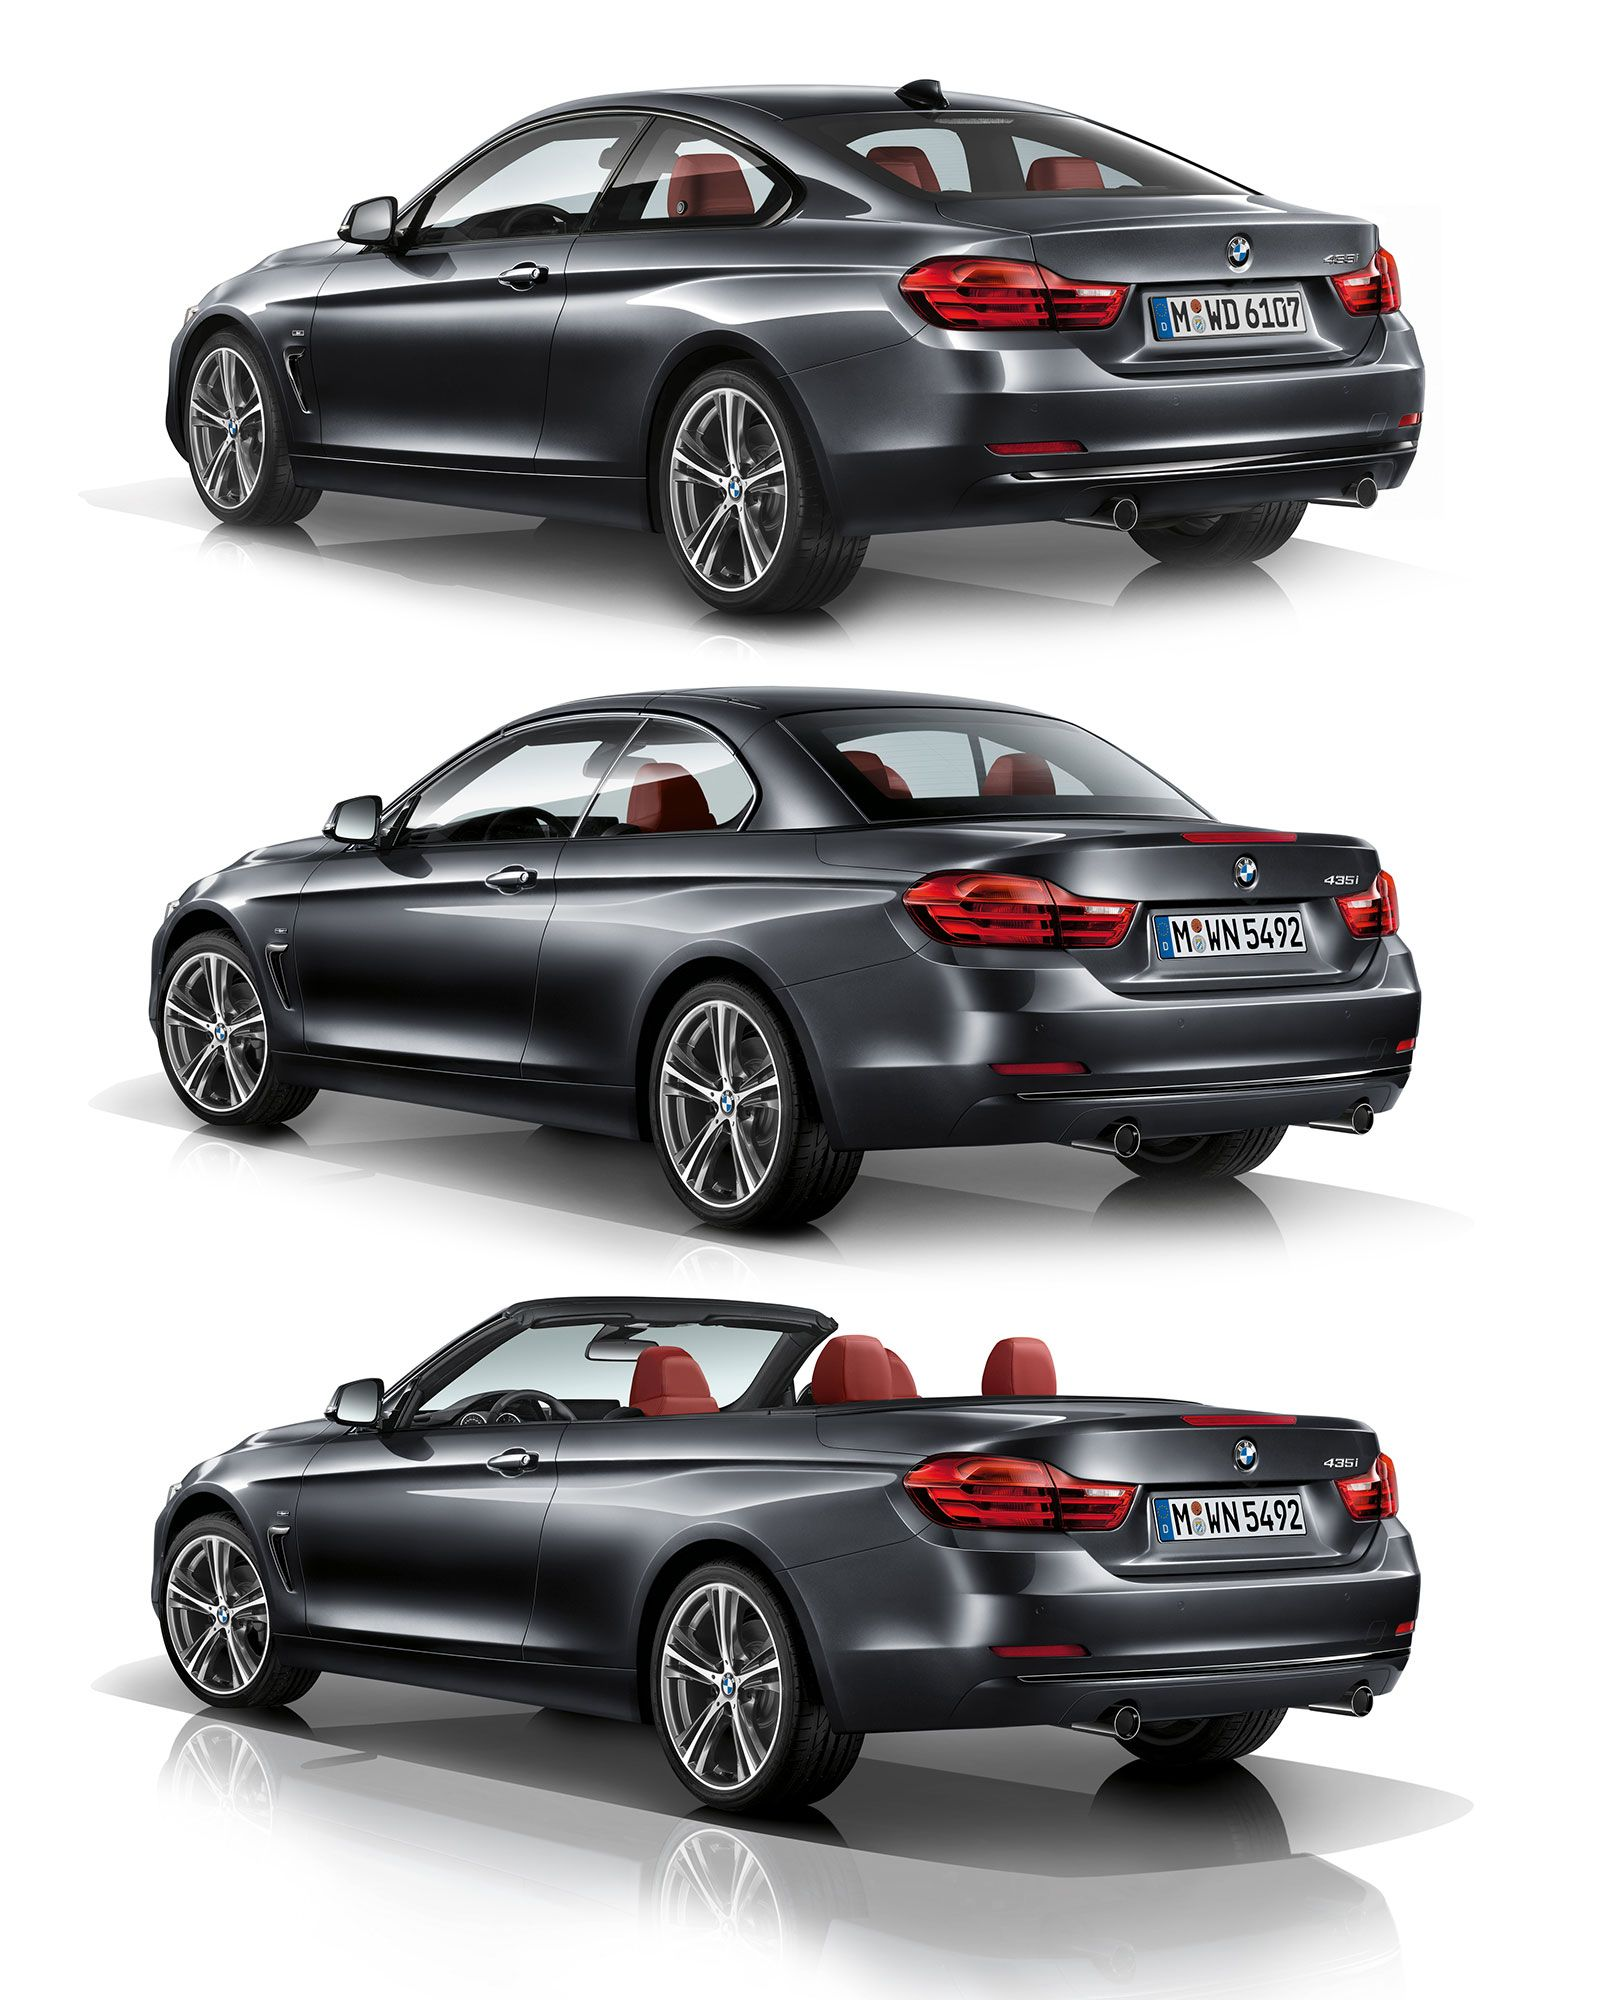 BMW Series Coupe And Convertible Comparison Sketch Pinterest - 2013 bmw 4 series convertible